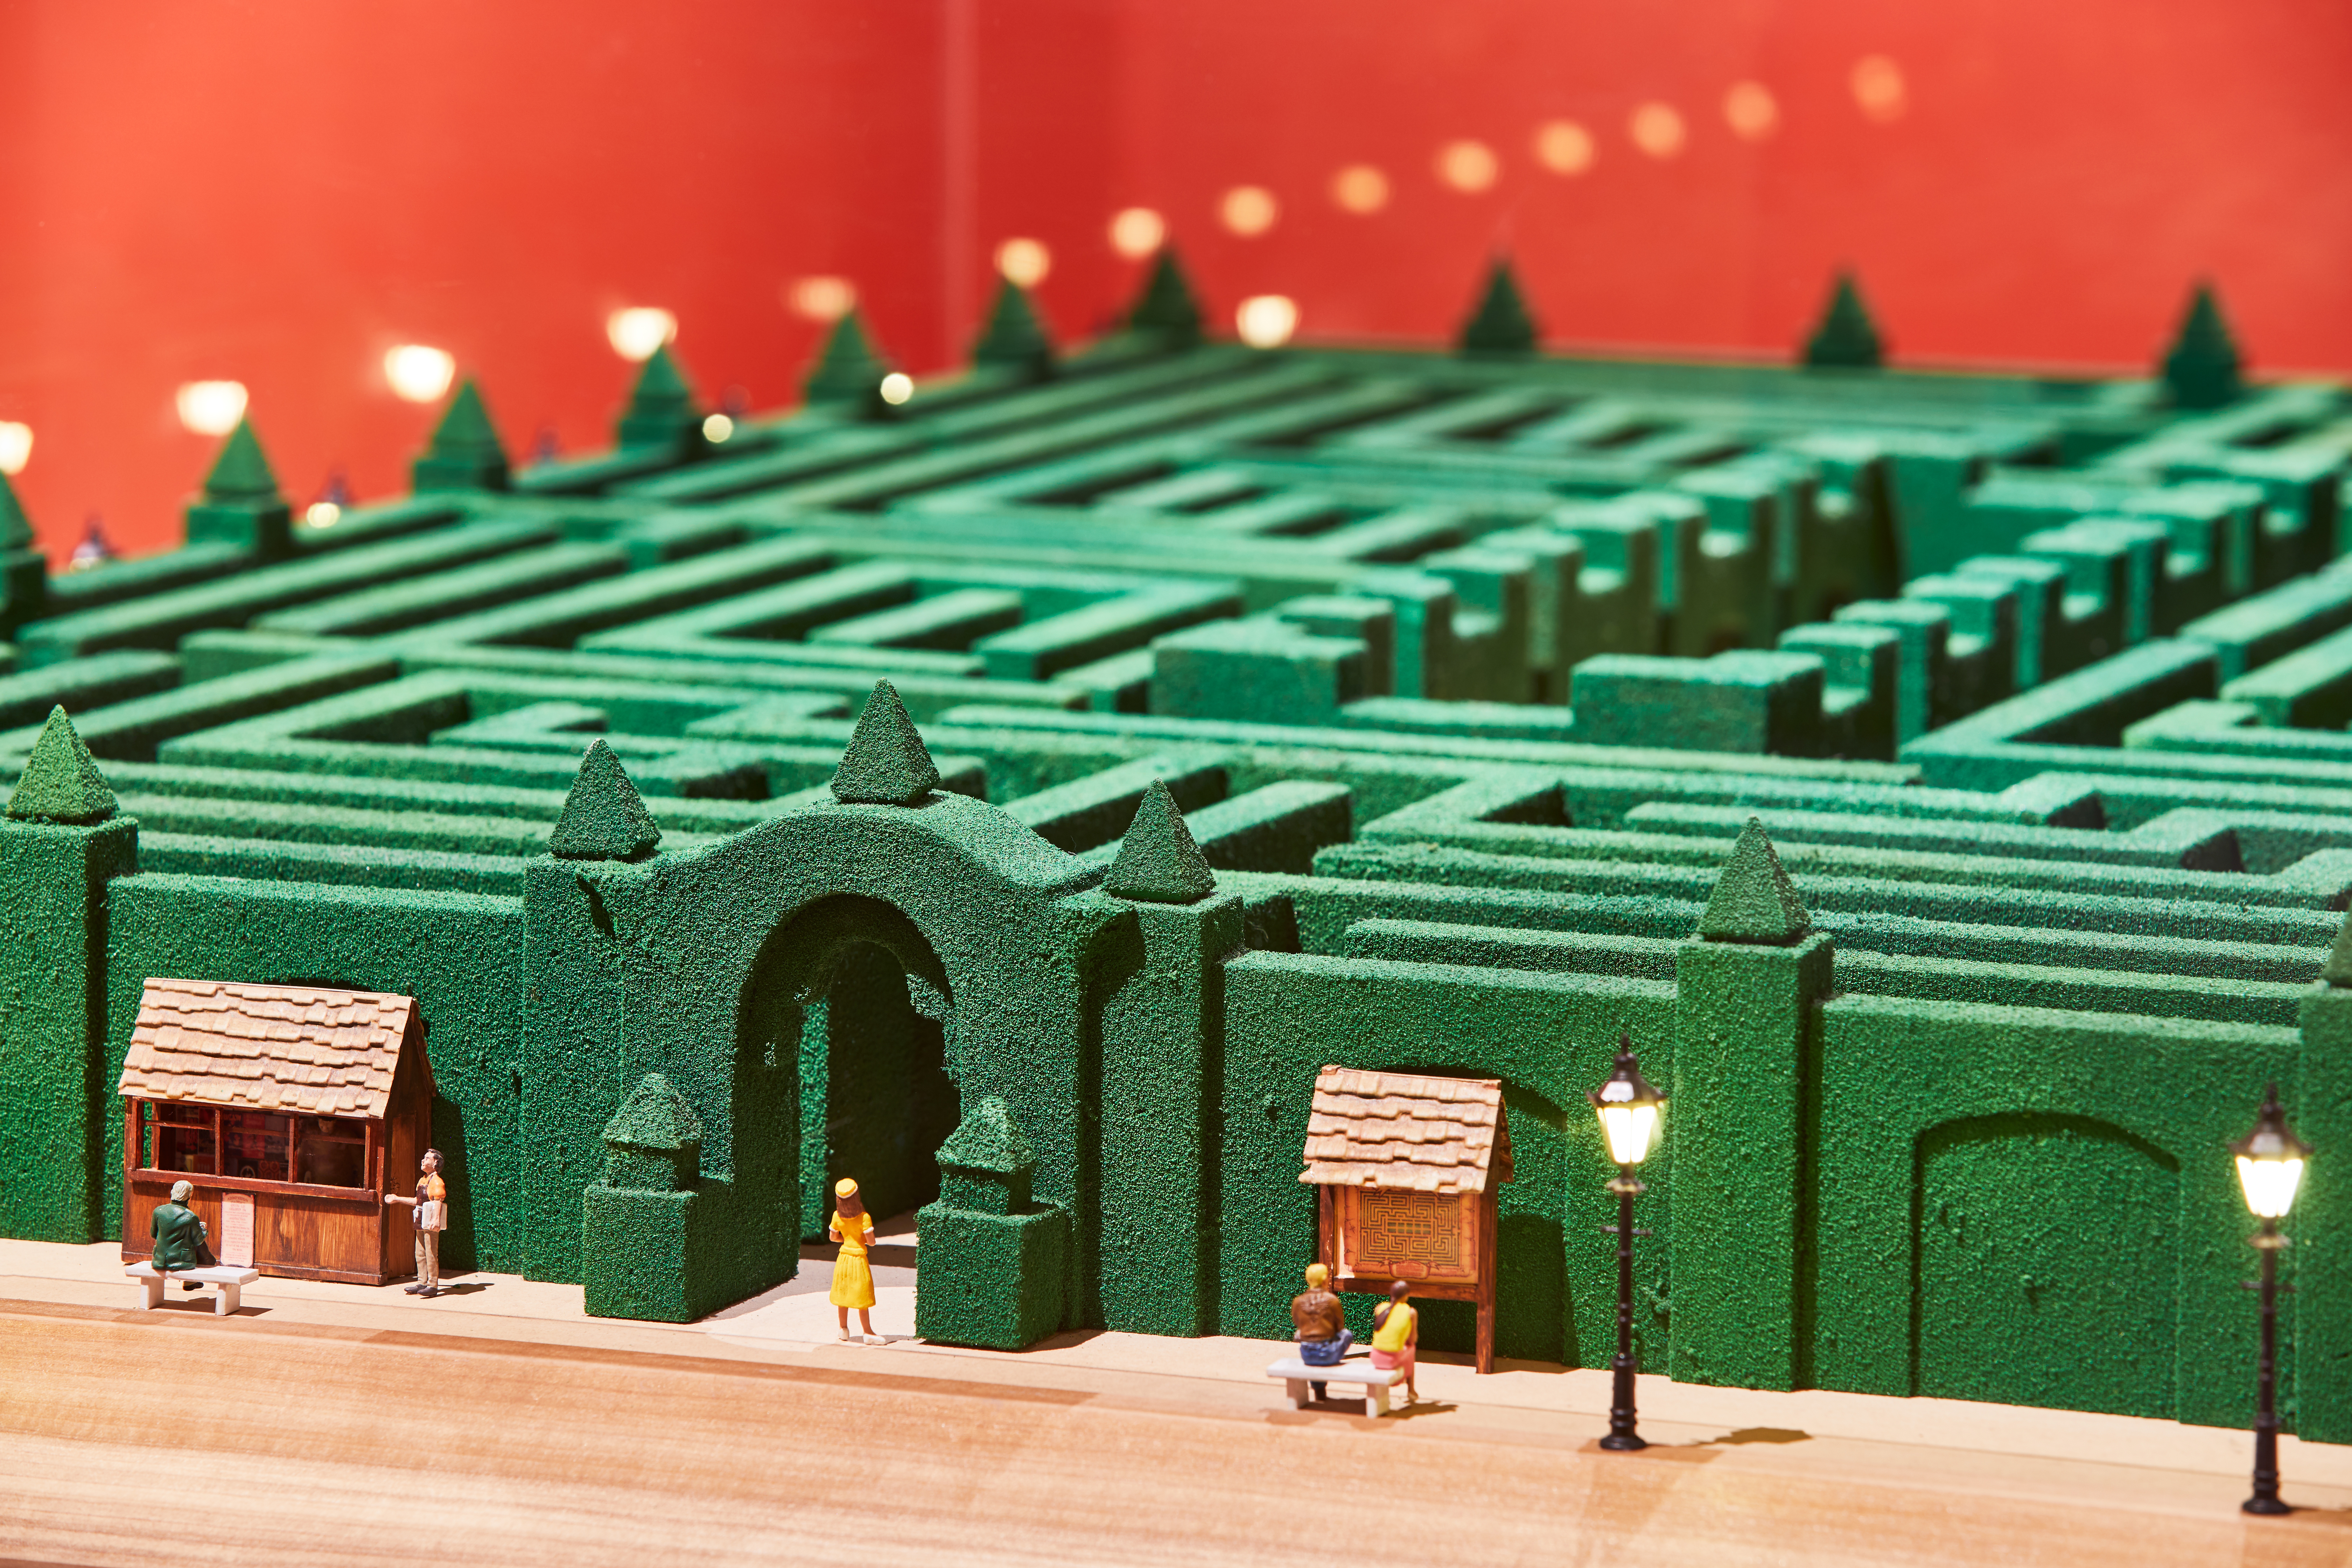 Model of the maze from The Shining